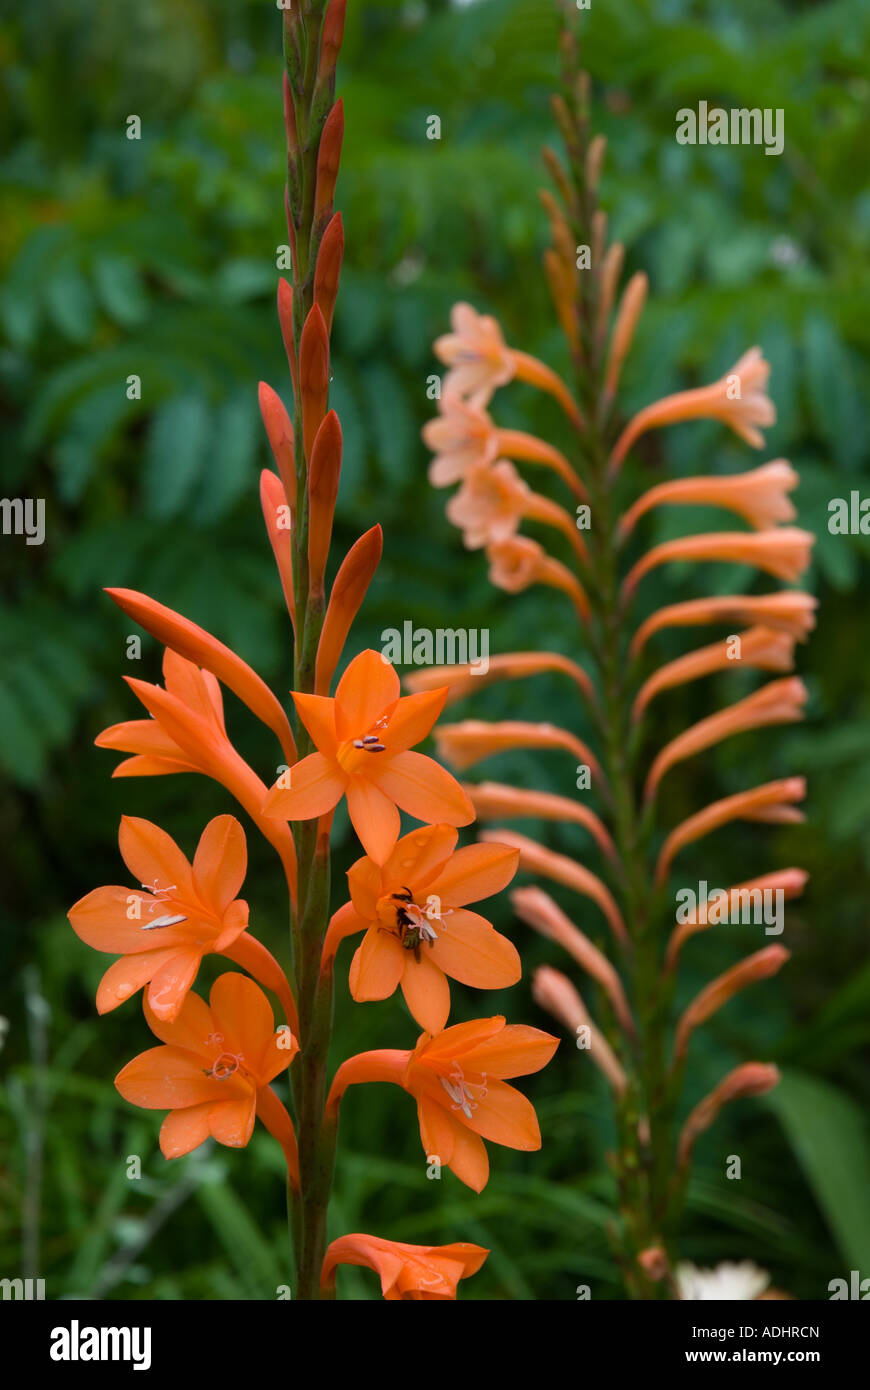 Page 10   Watsonia Plant High Resolution Stock Photography and ...